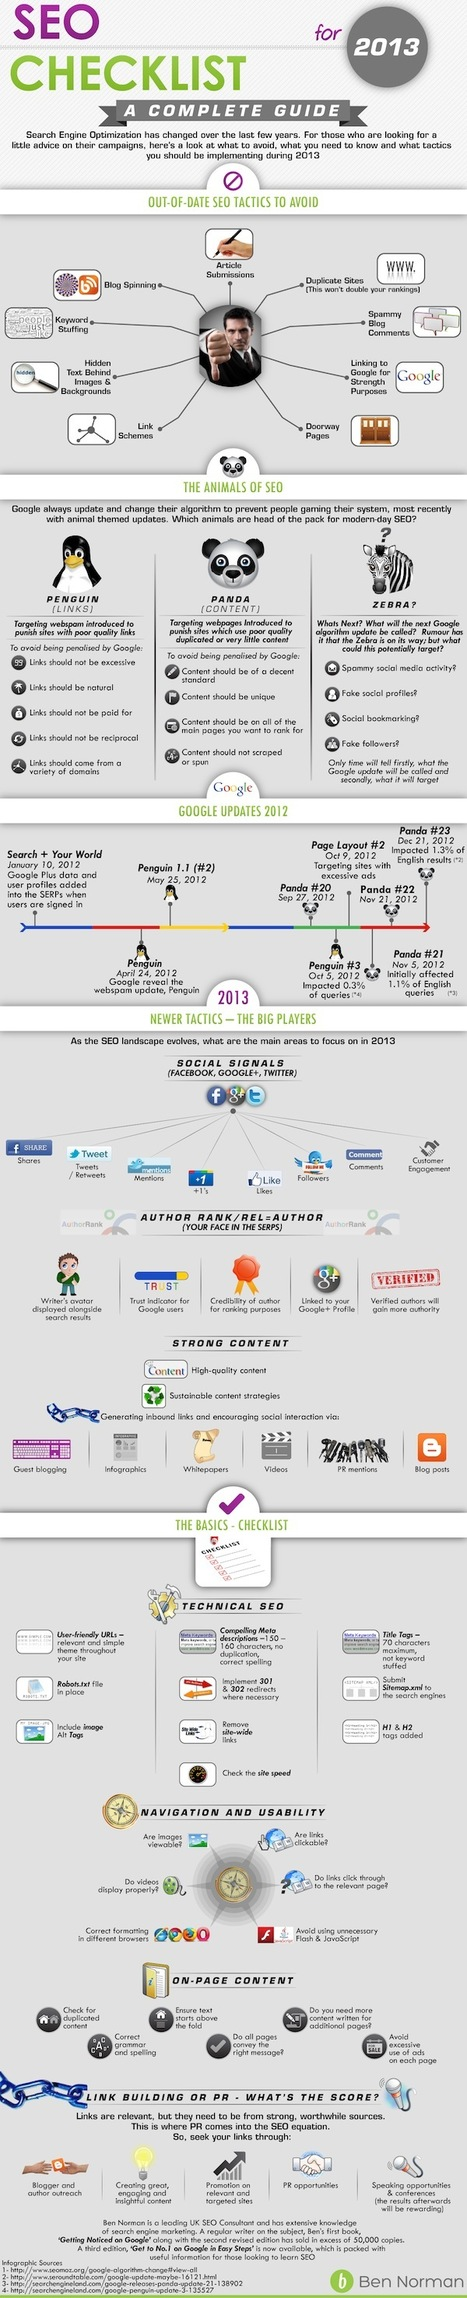 [infographie] Quelques points importants pour votre SEO en 2013 | Marketing sur le net et Management Entreprise | Scoop.it